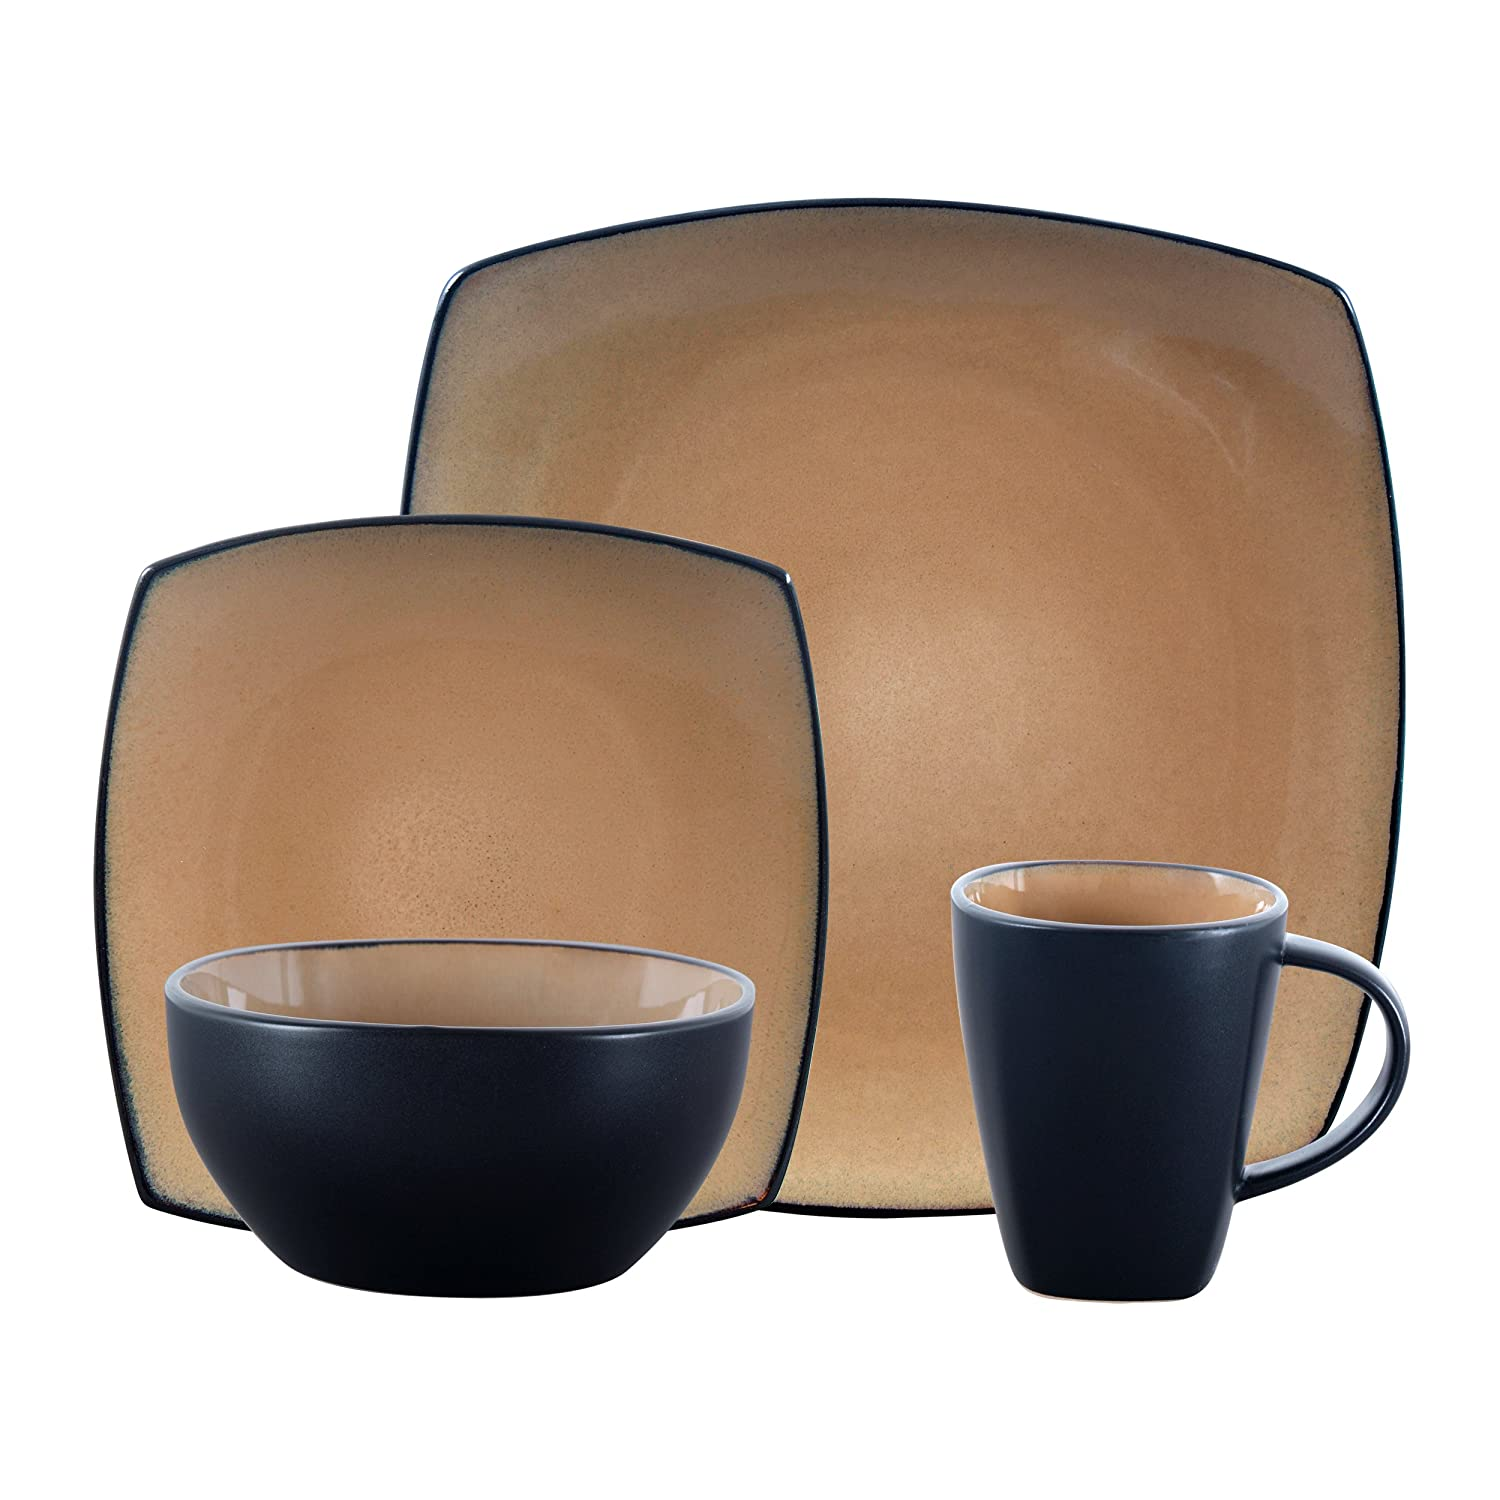 Gibson Elite 61222.16RM Soho Lounge Square 16-Piece Reactive Glaze Dinnerware Set Service of 4, Stoneware, Taupe